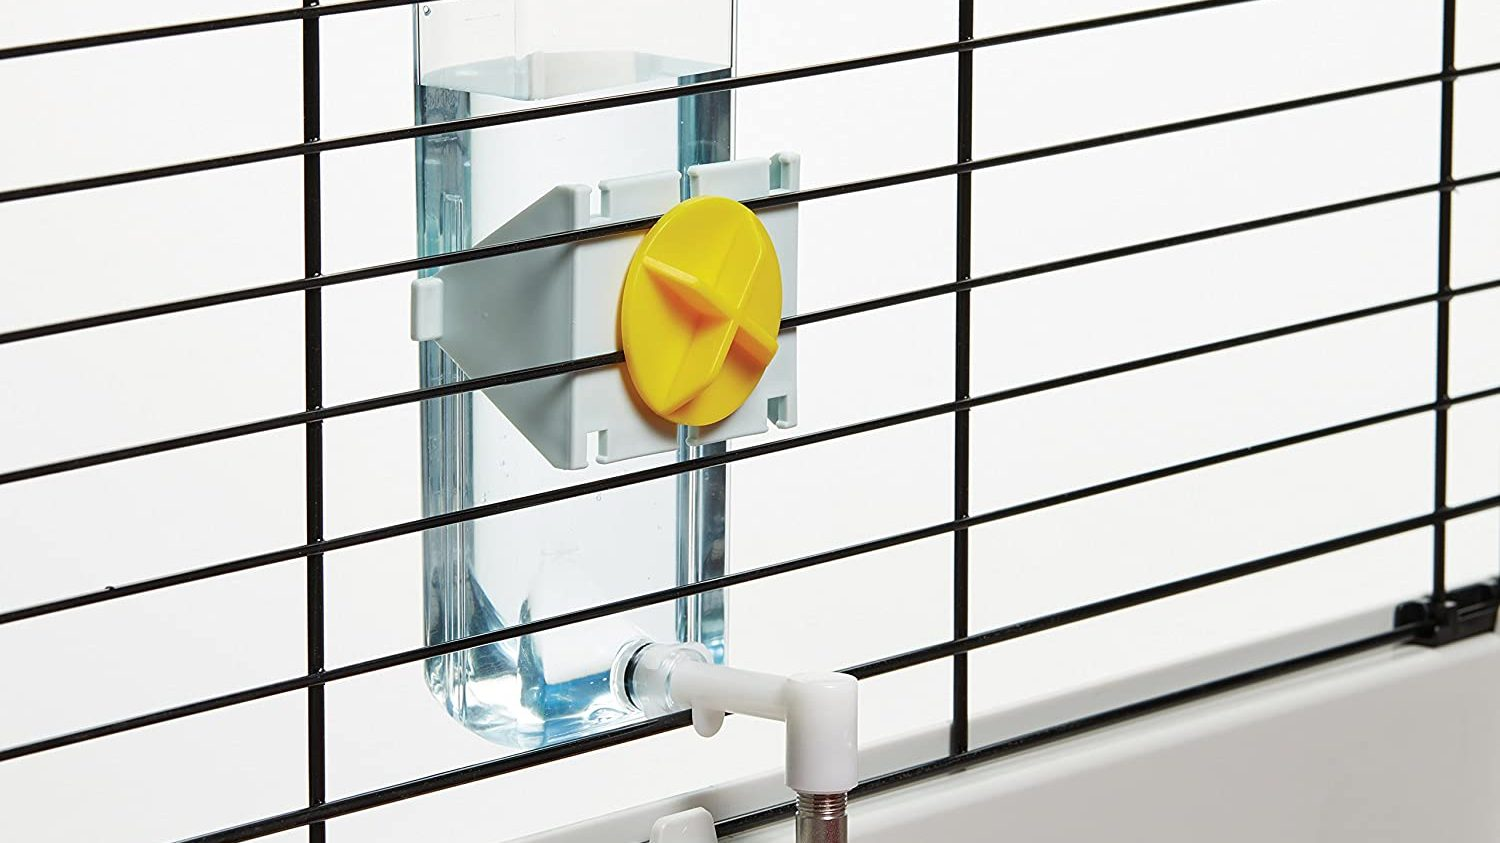 Best for Plastic or Glass Cages